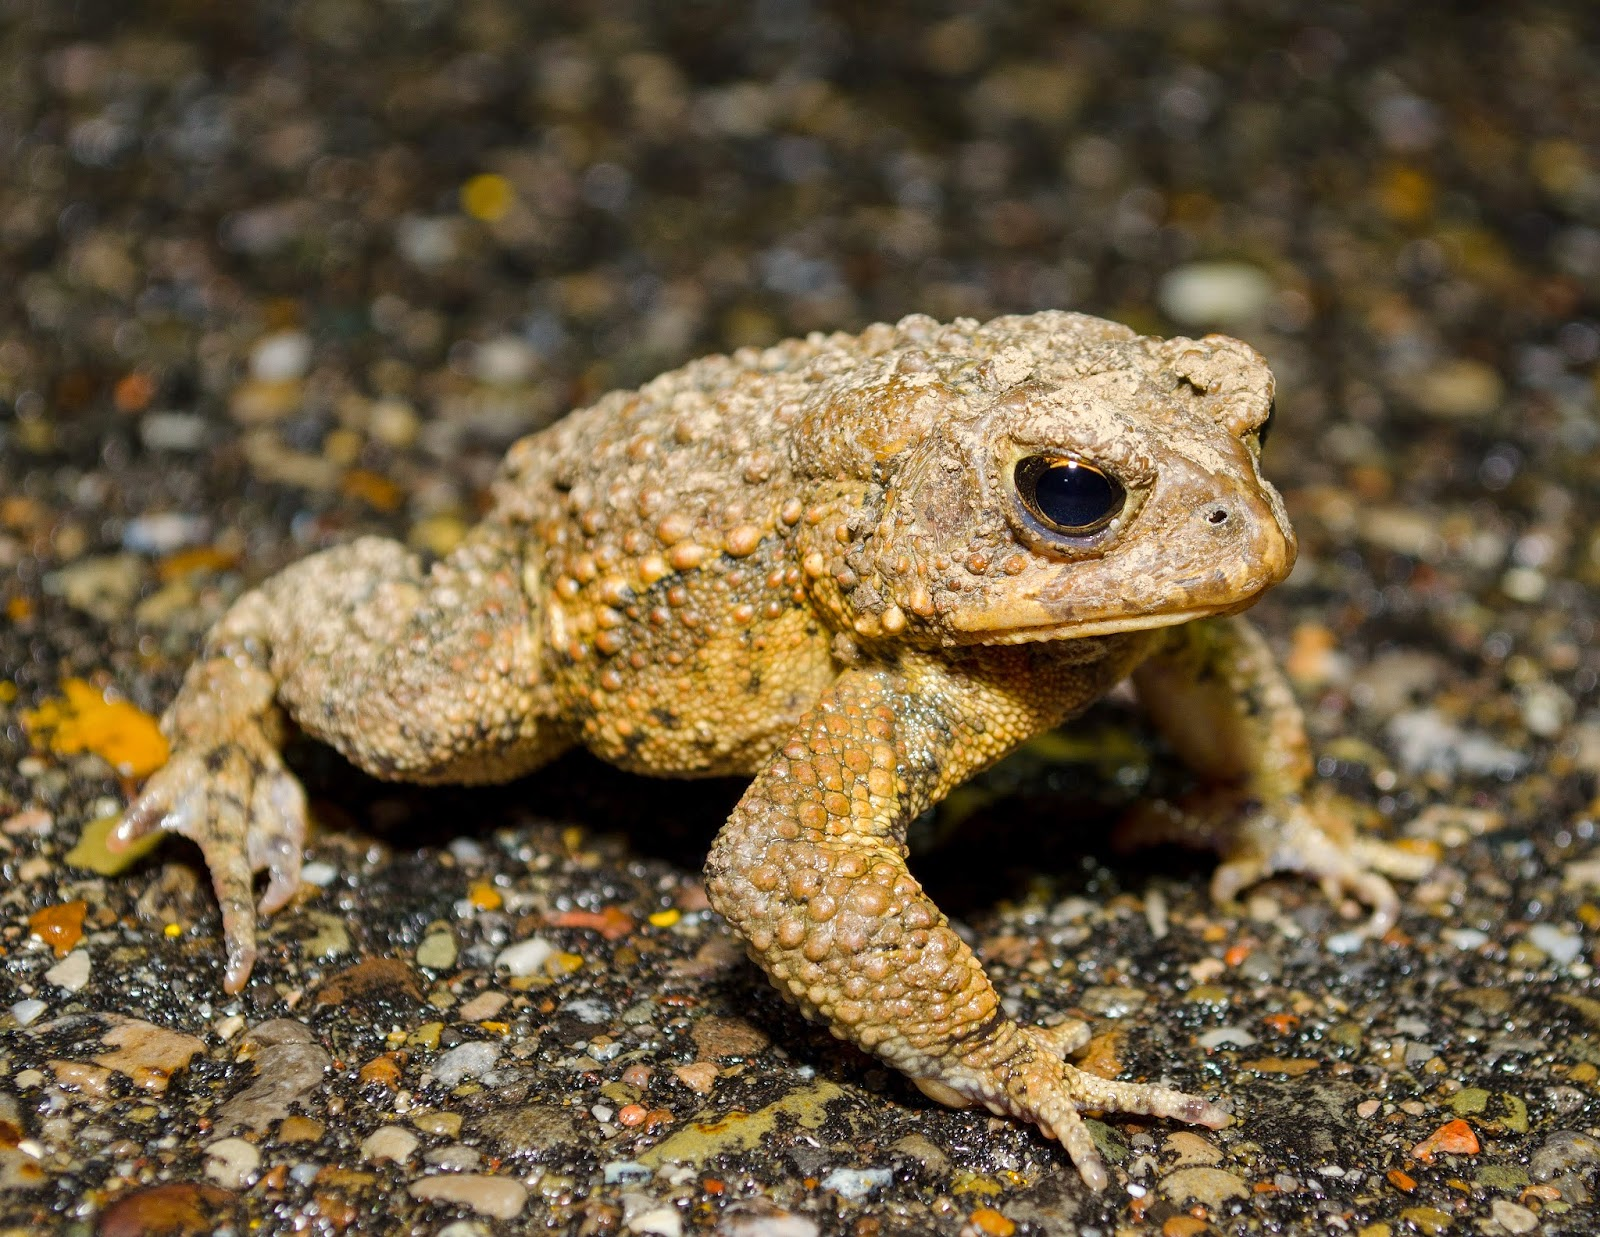 American Toad, Anaxyrus americanus